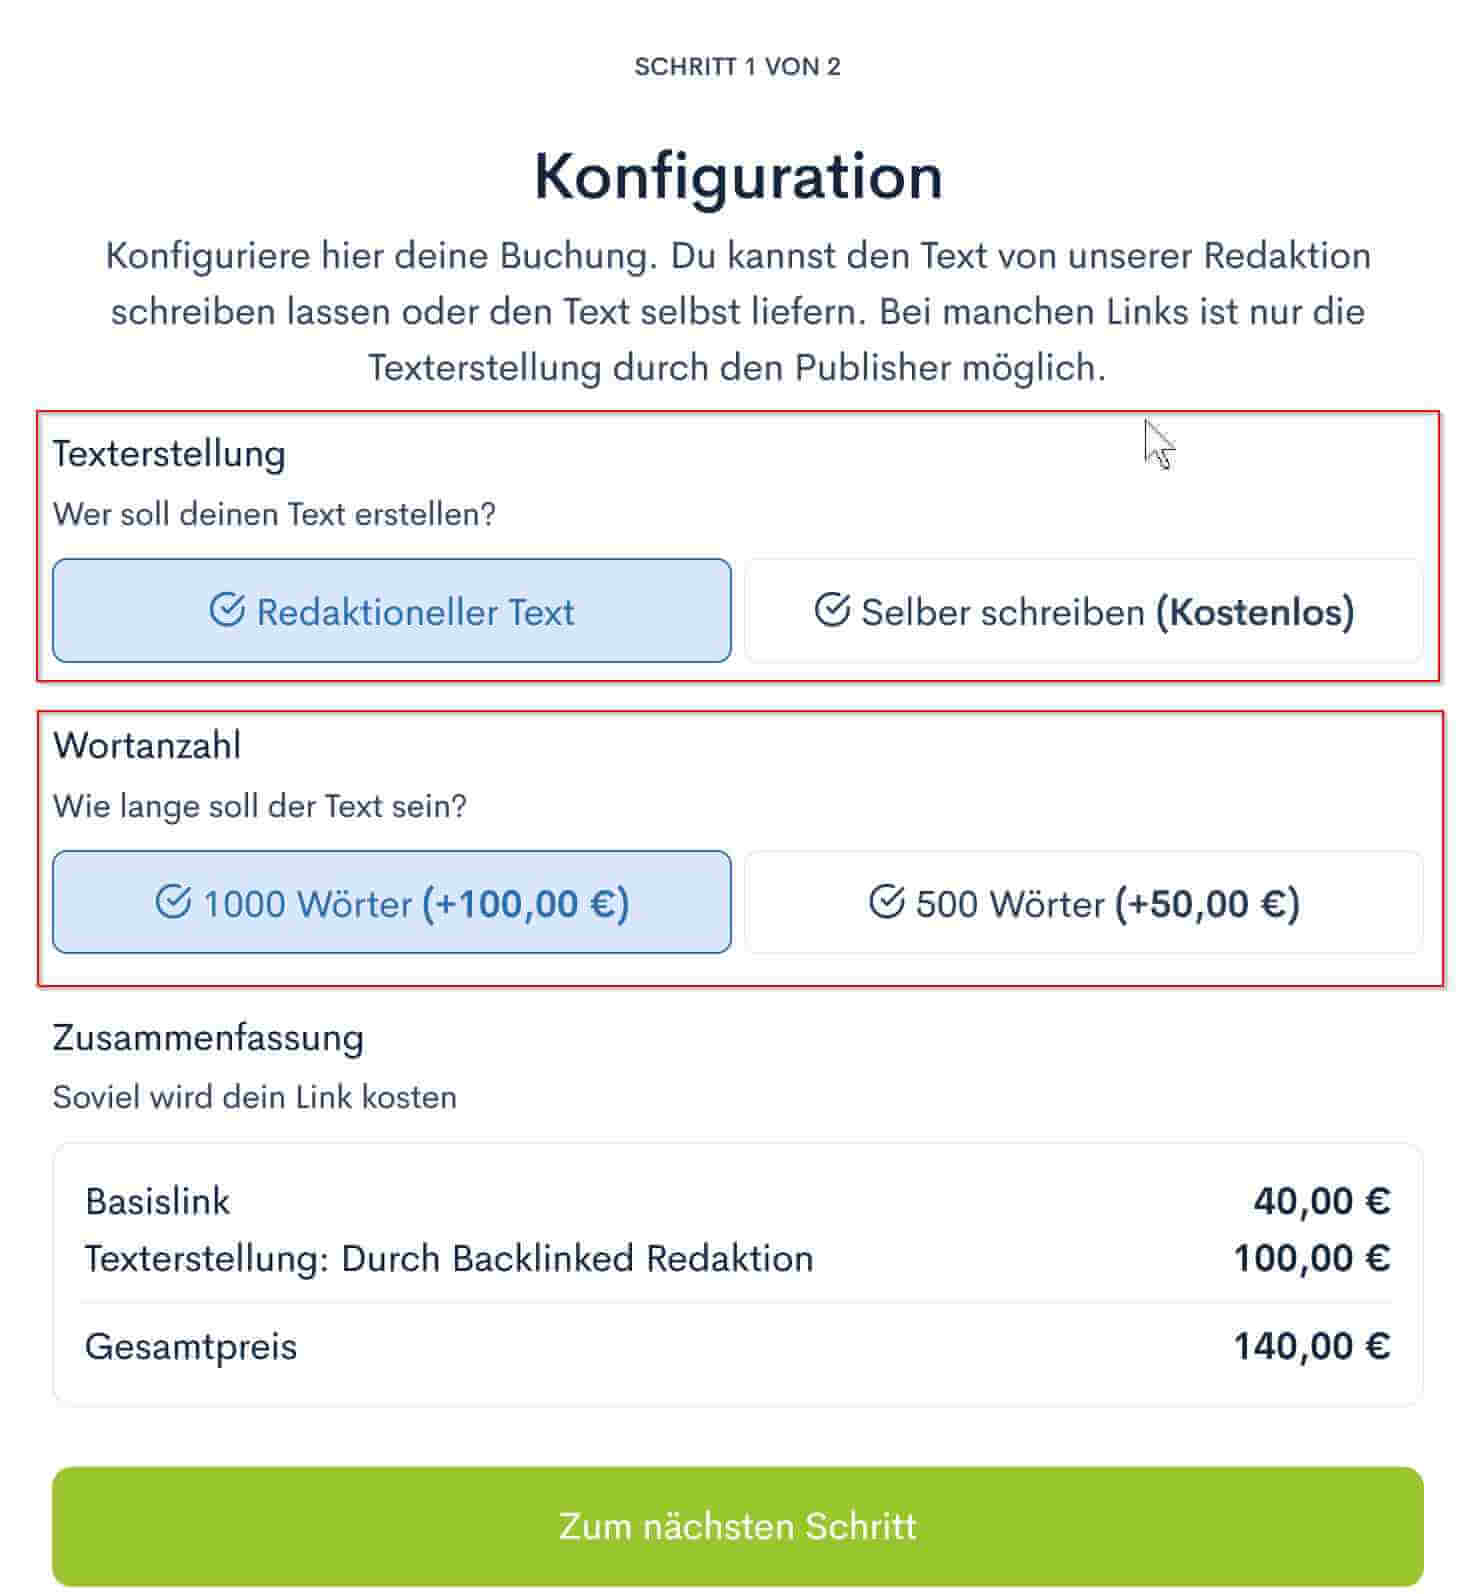 Text outsourcen bei Backlinked